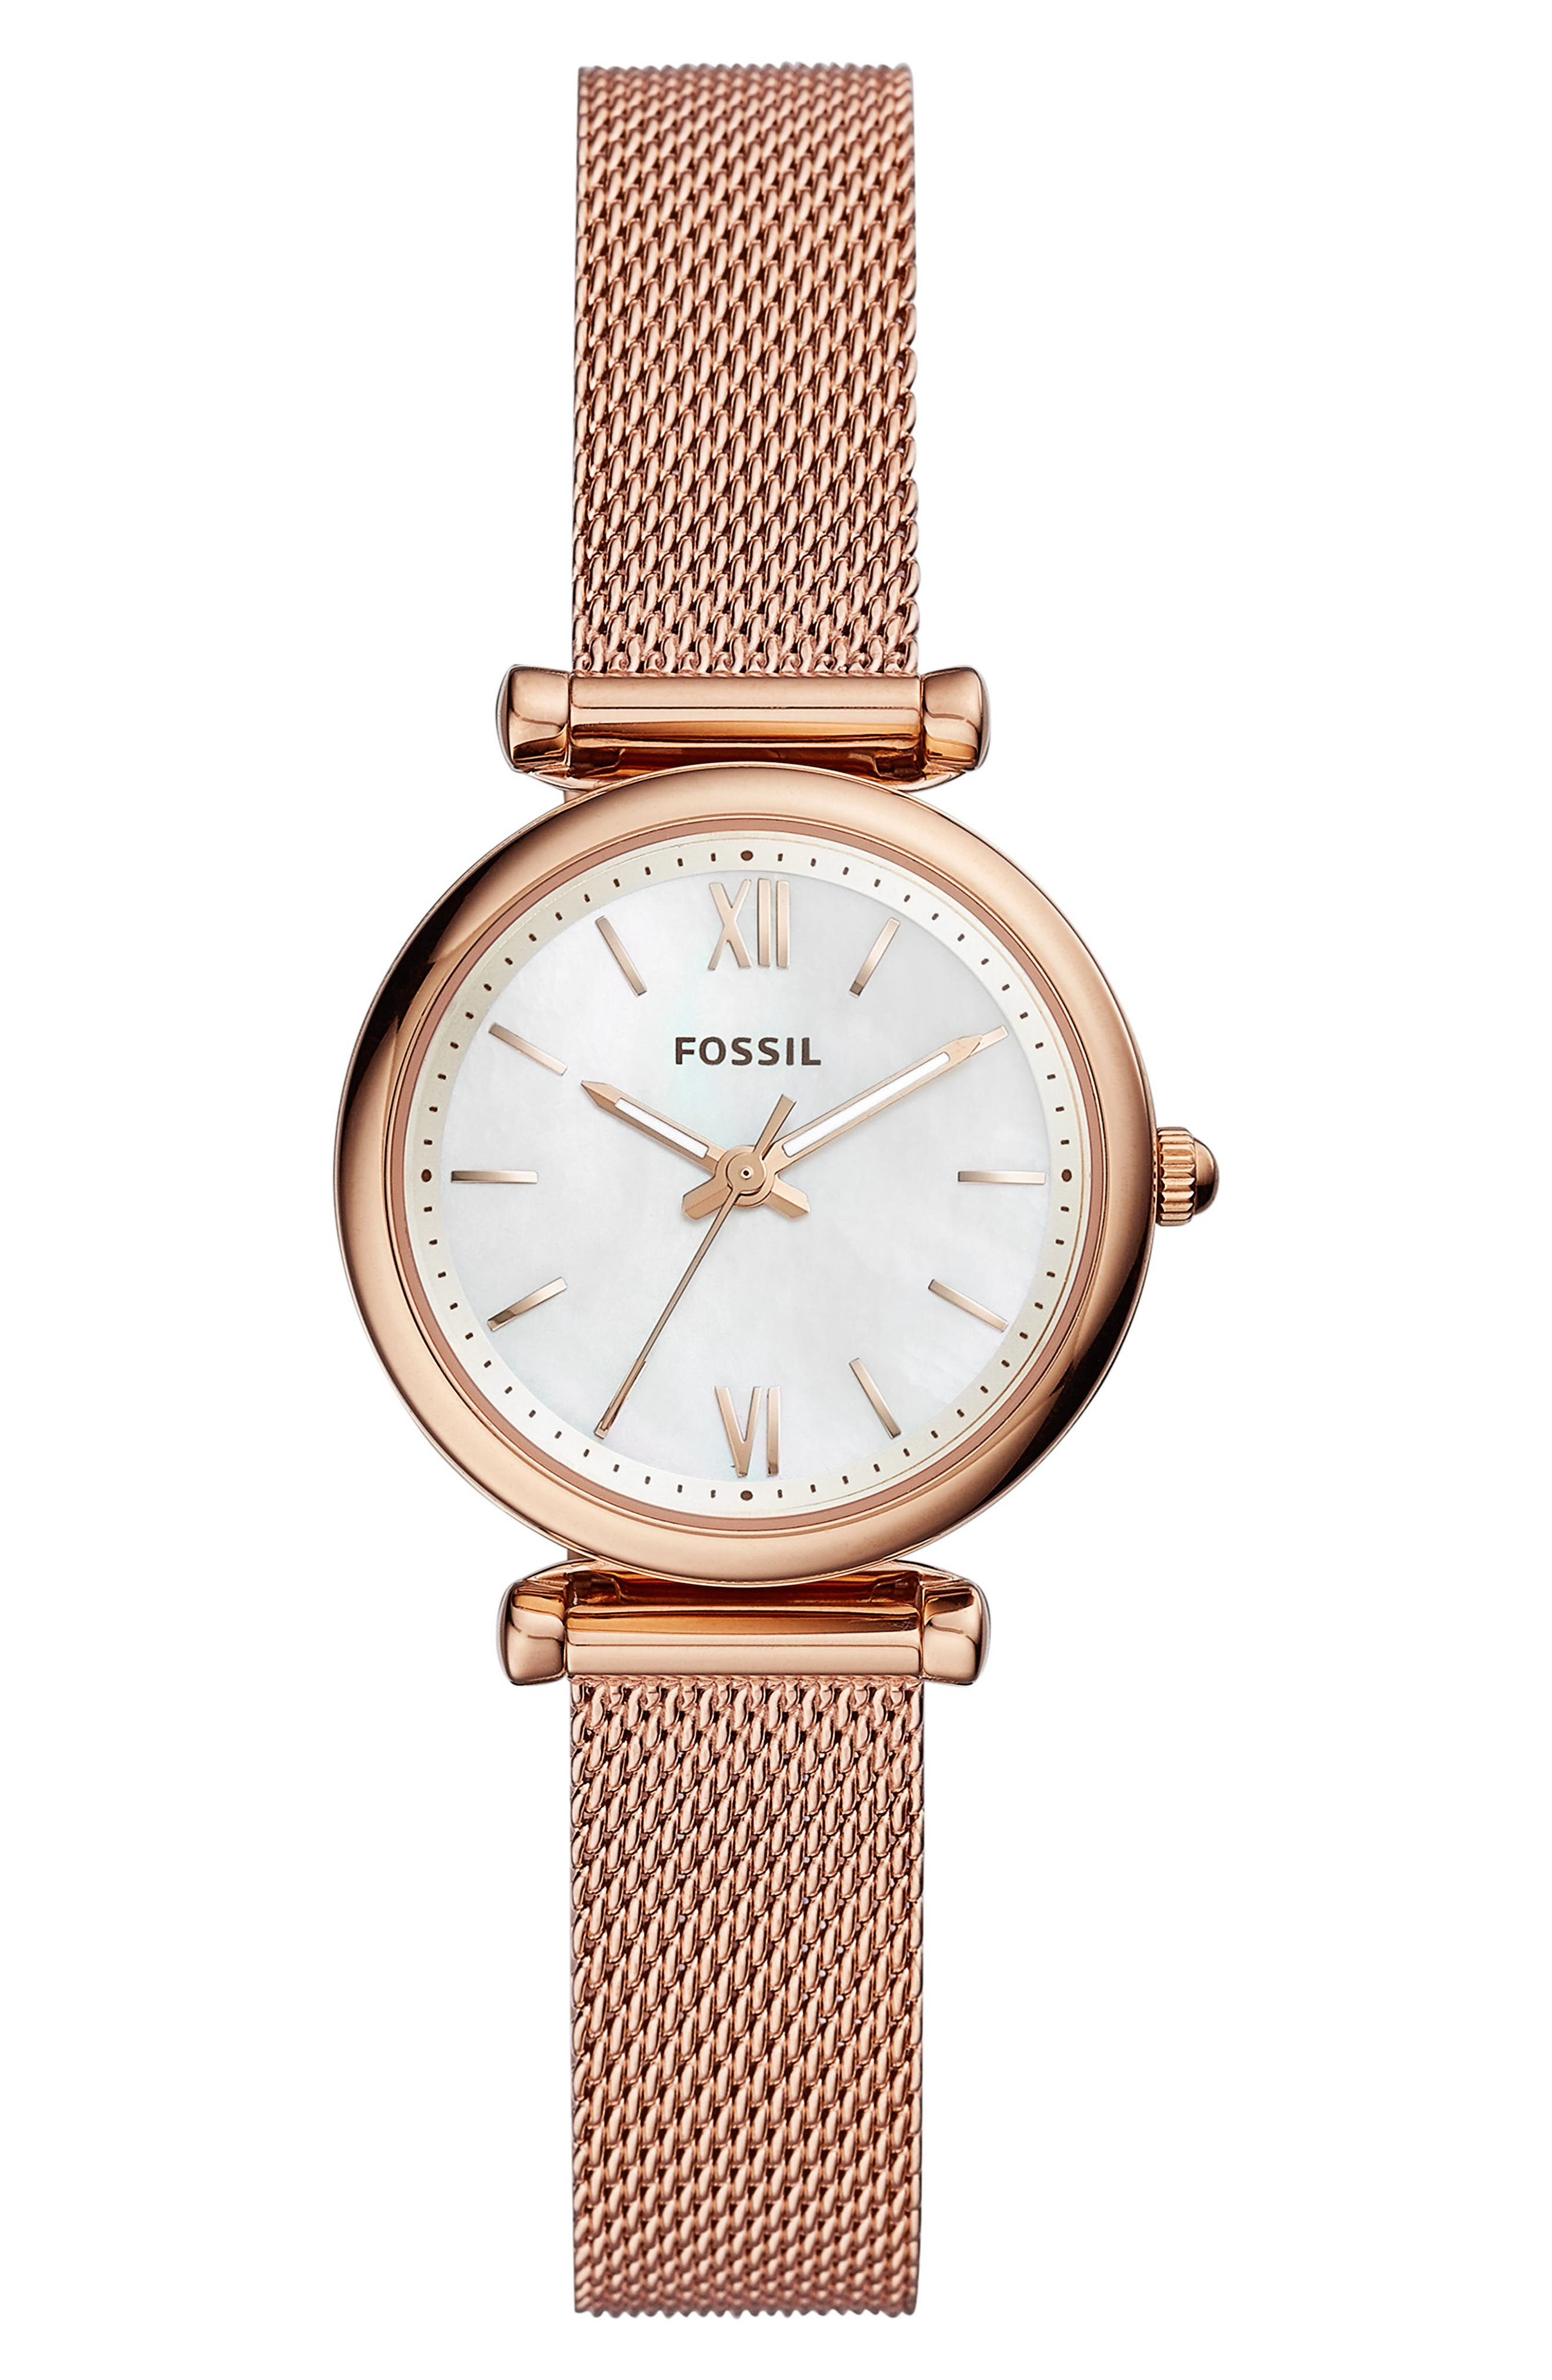 FOSSIL Mini Carlie Mesh Strap Watch, 28mm, Main, color, ROSEGOLD/MOTHER PEARL/ROSEGOLD